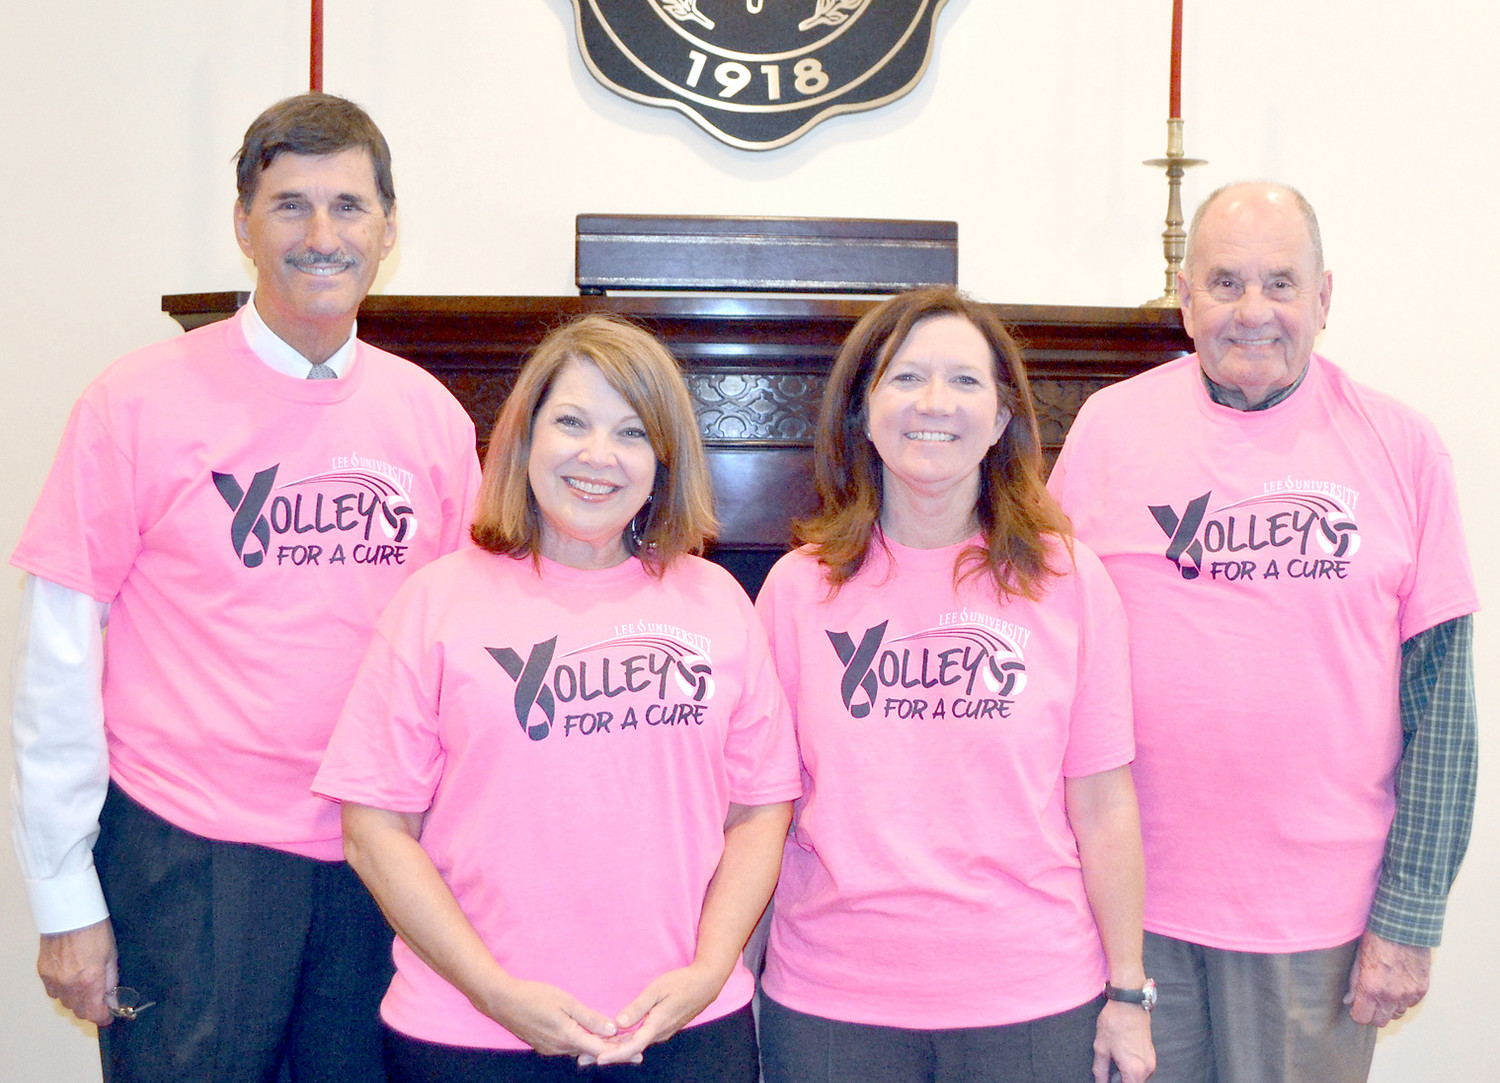 LEE PRESIDENT Dr. Paul Conn and Cleveland Mayor Tom Rowland wear the pink Volley for a Cure shirts. From left are Conn, cancer survivor Stephanie Taylor, Lee volleyball coach Andrea Hudson, and Rowland.